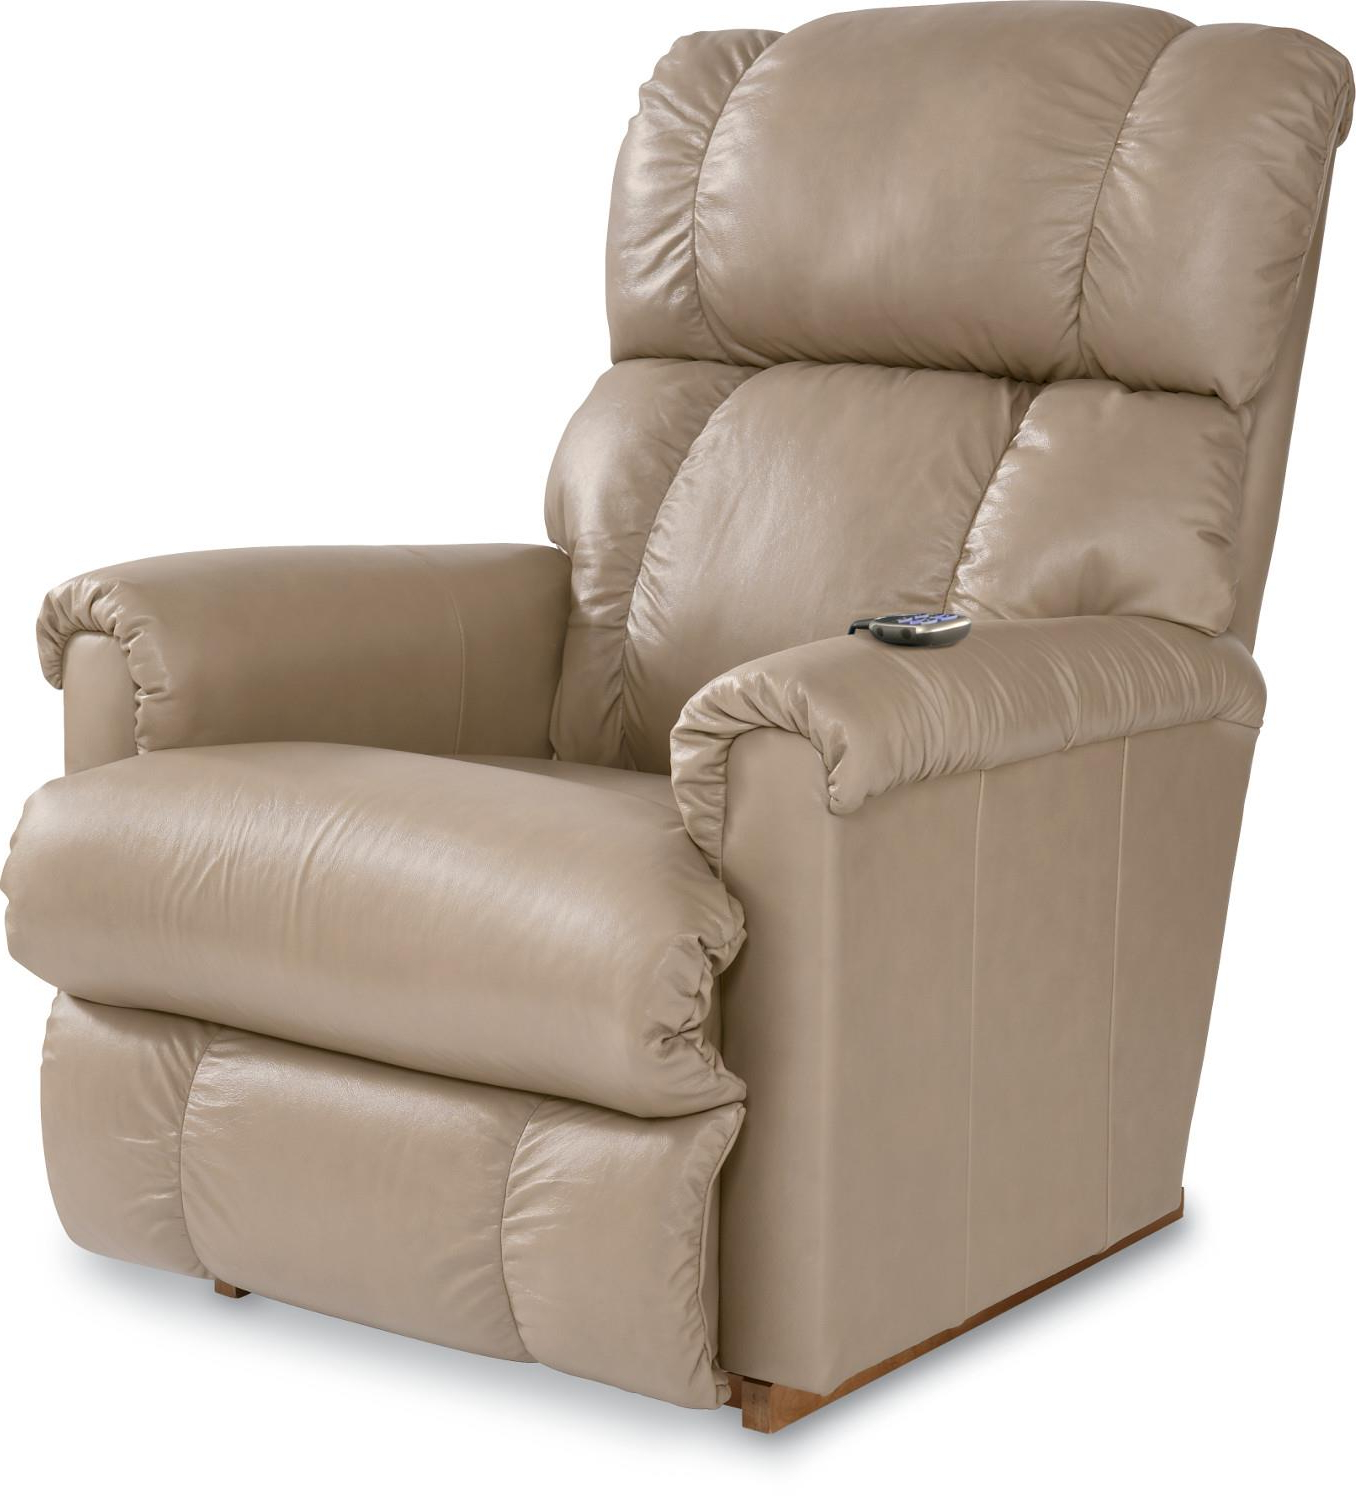 La Z Boy Pinnacle Powerreclinexr+ Reclina Rocker® Recliner (View 7 of 20)